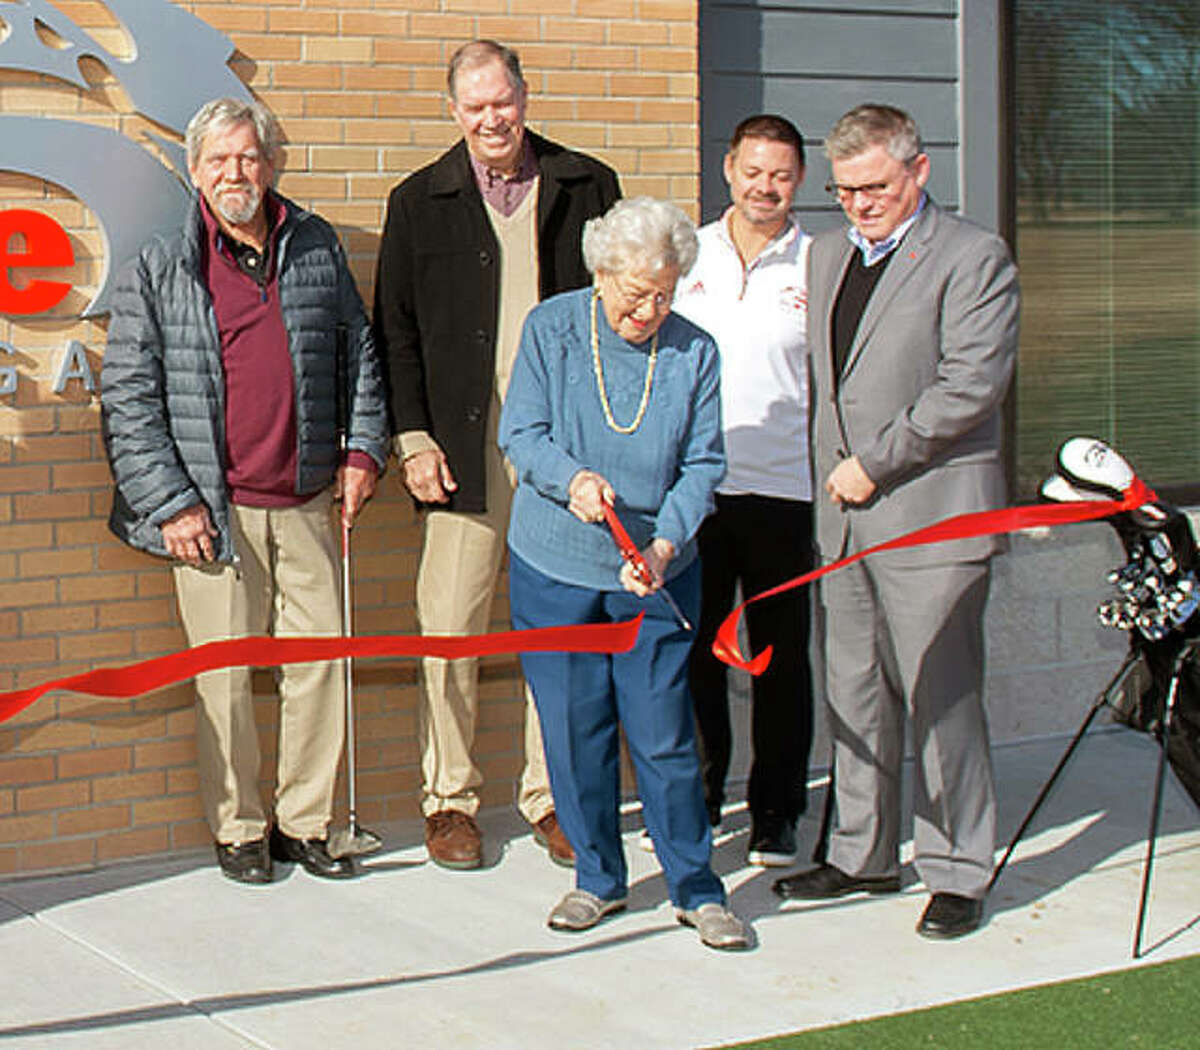 Bev Gallatin, surrounded by family and friends, cuts to ribbon to open the new Harry Gallatin SIUE Golf Practice Facility Tuesday at Sunset Hills Country Club, named in memory of her late husband, who was a longtime golf and basketball coach at SIUE.